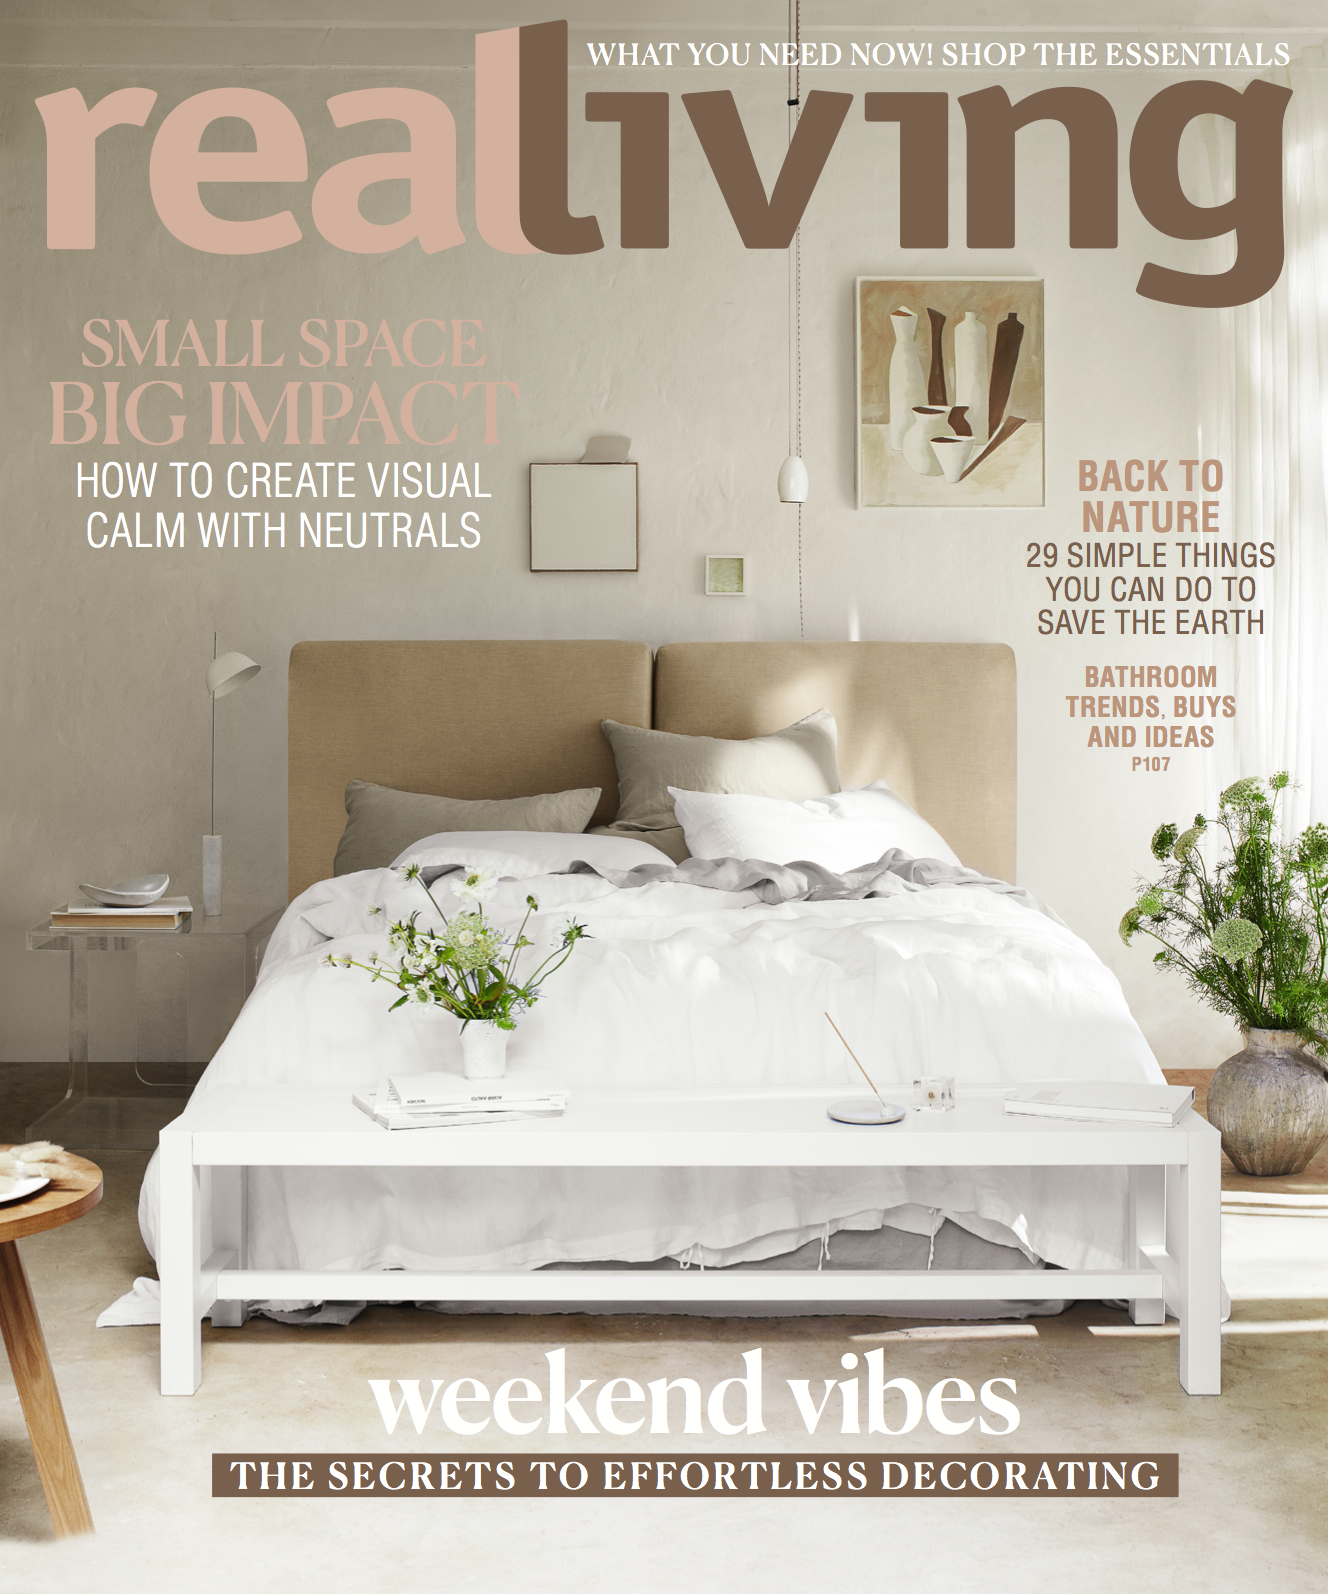 ON THE COVER OF REAL LIVING JUNE 2019 - I'm so delighted to have my Incense Holder and Pebble Bowl both featured on this beautiful cover of the June issue of Real Living magazine. And they're featured inside along with a little candlestick collab I did with Vela de Cera. Check out the pages here.